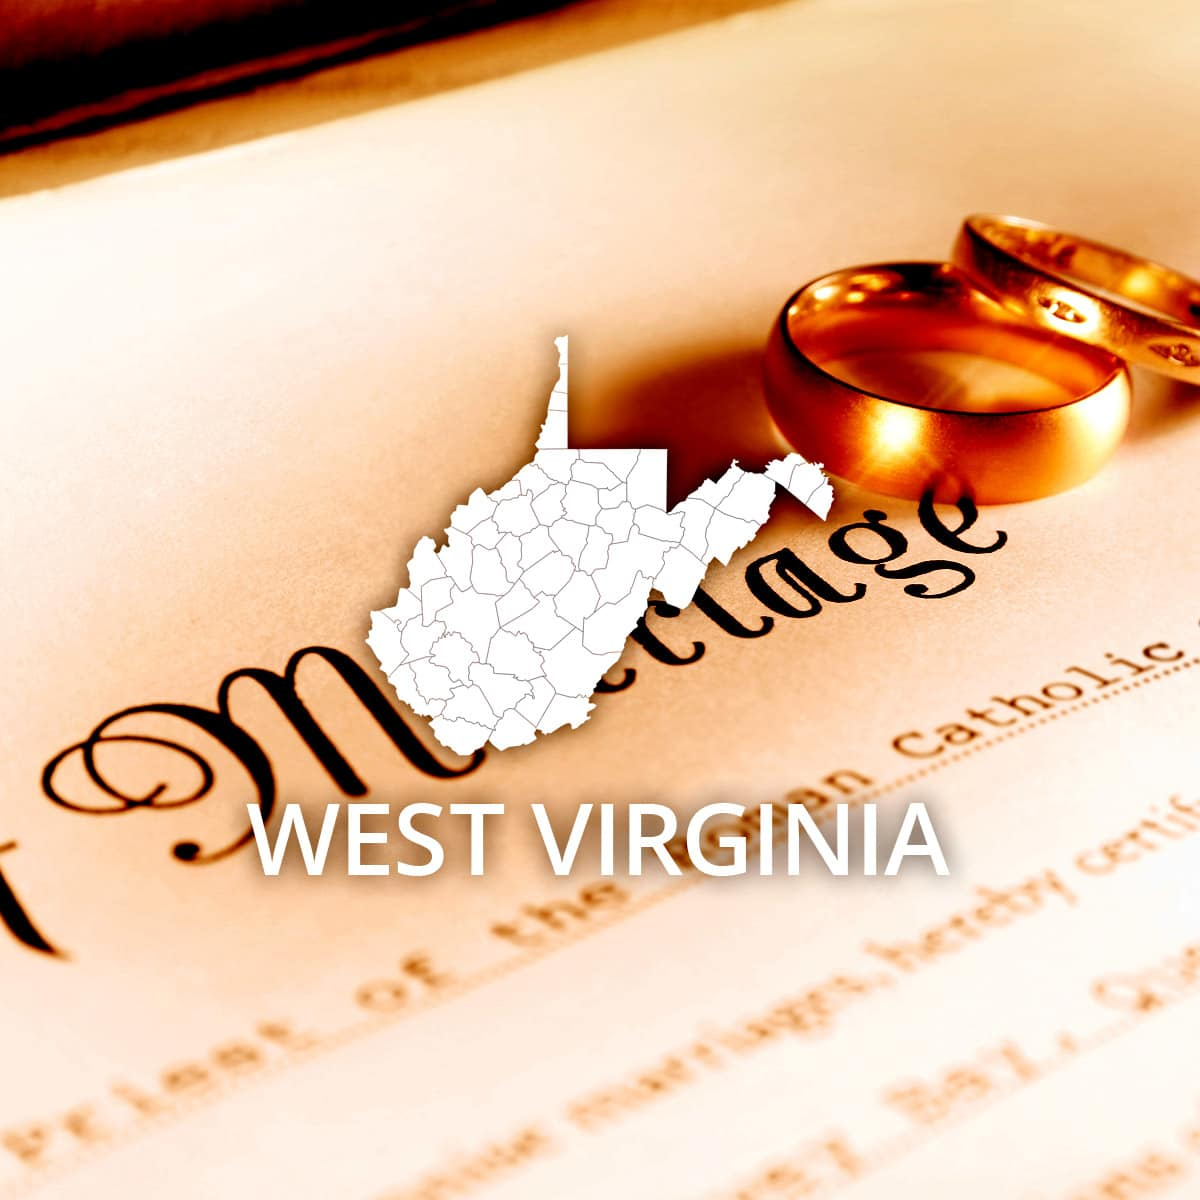 Where to Obtain a West Virginia Marriage Certificate